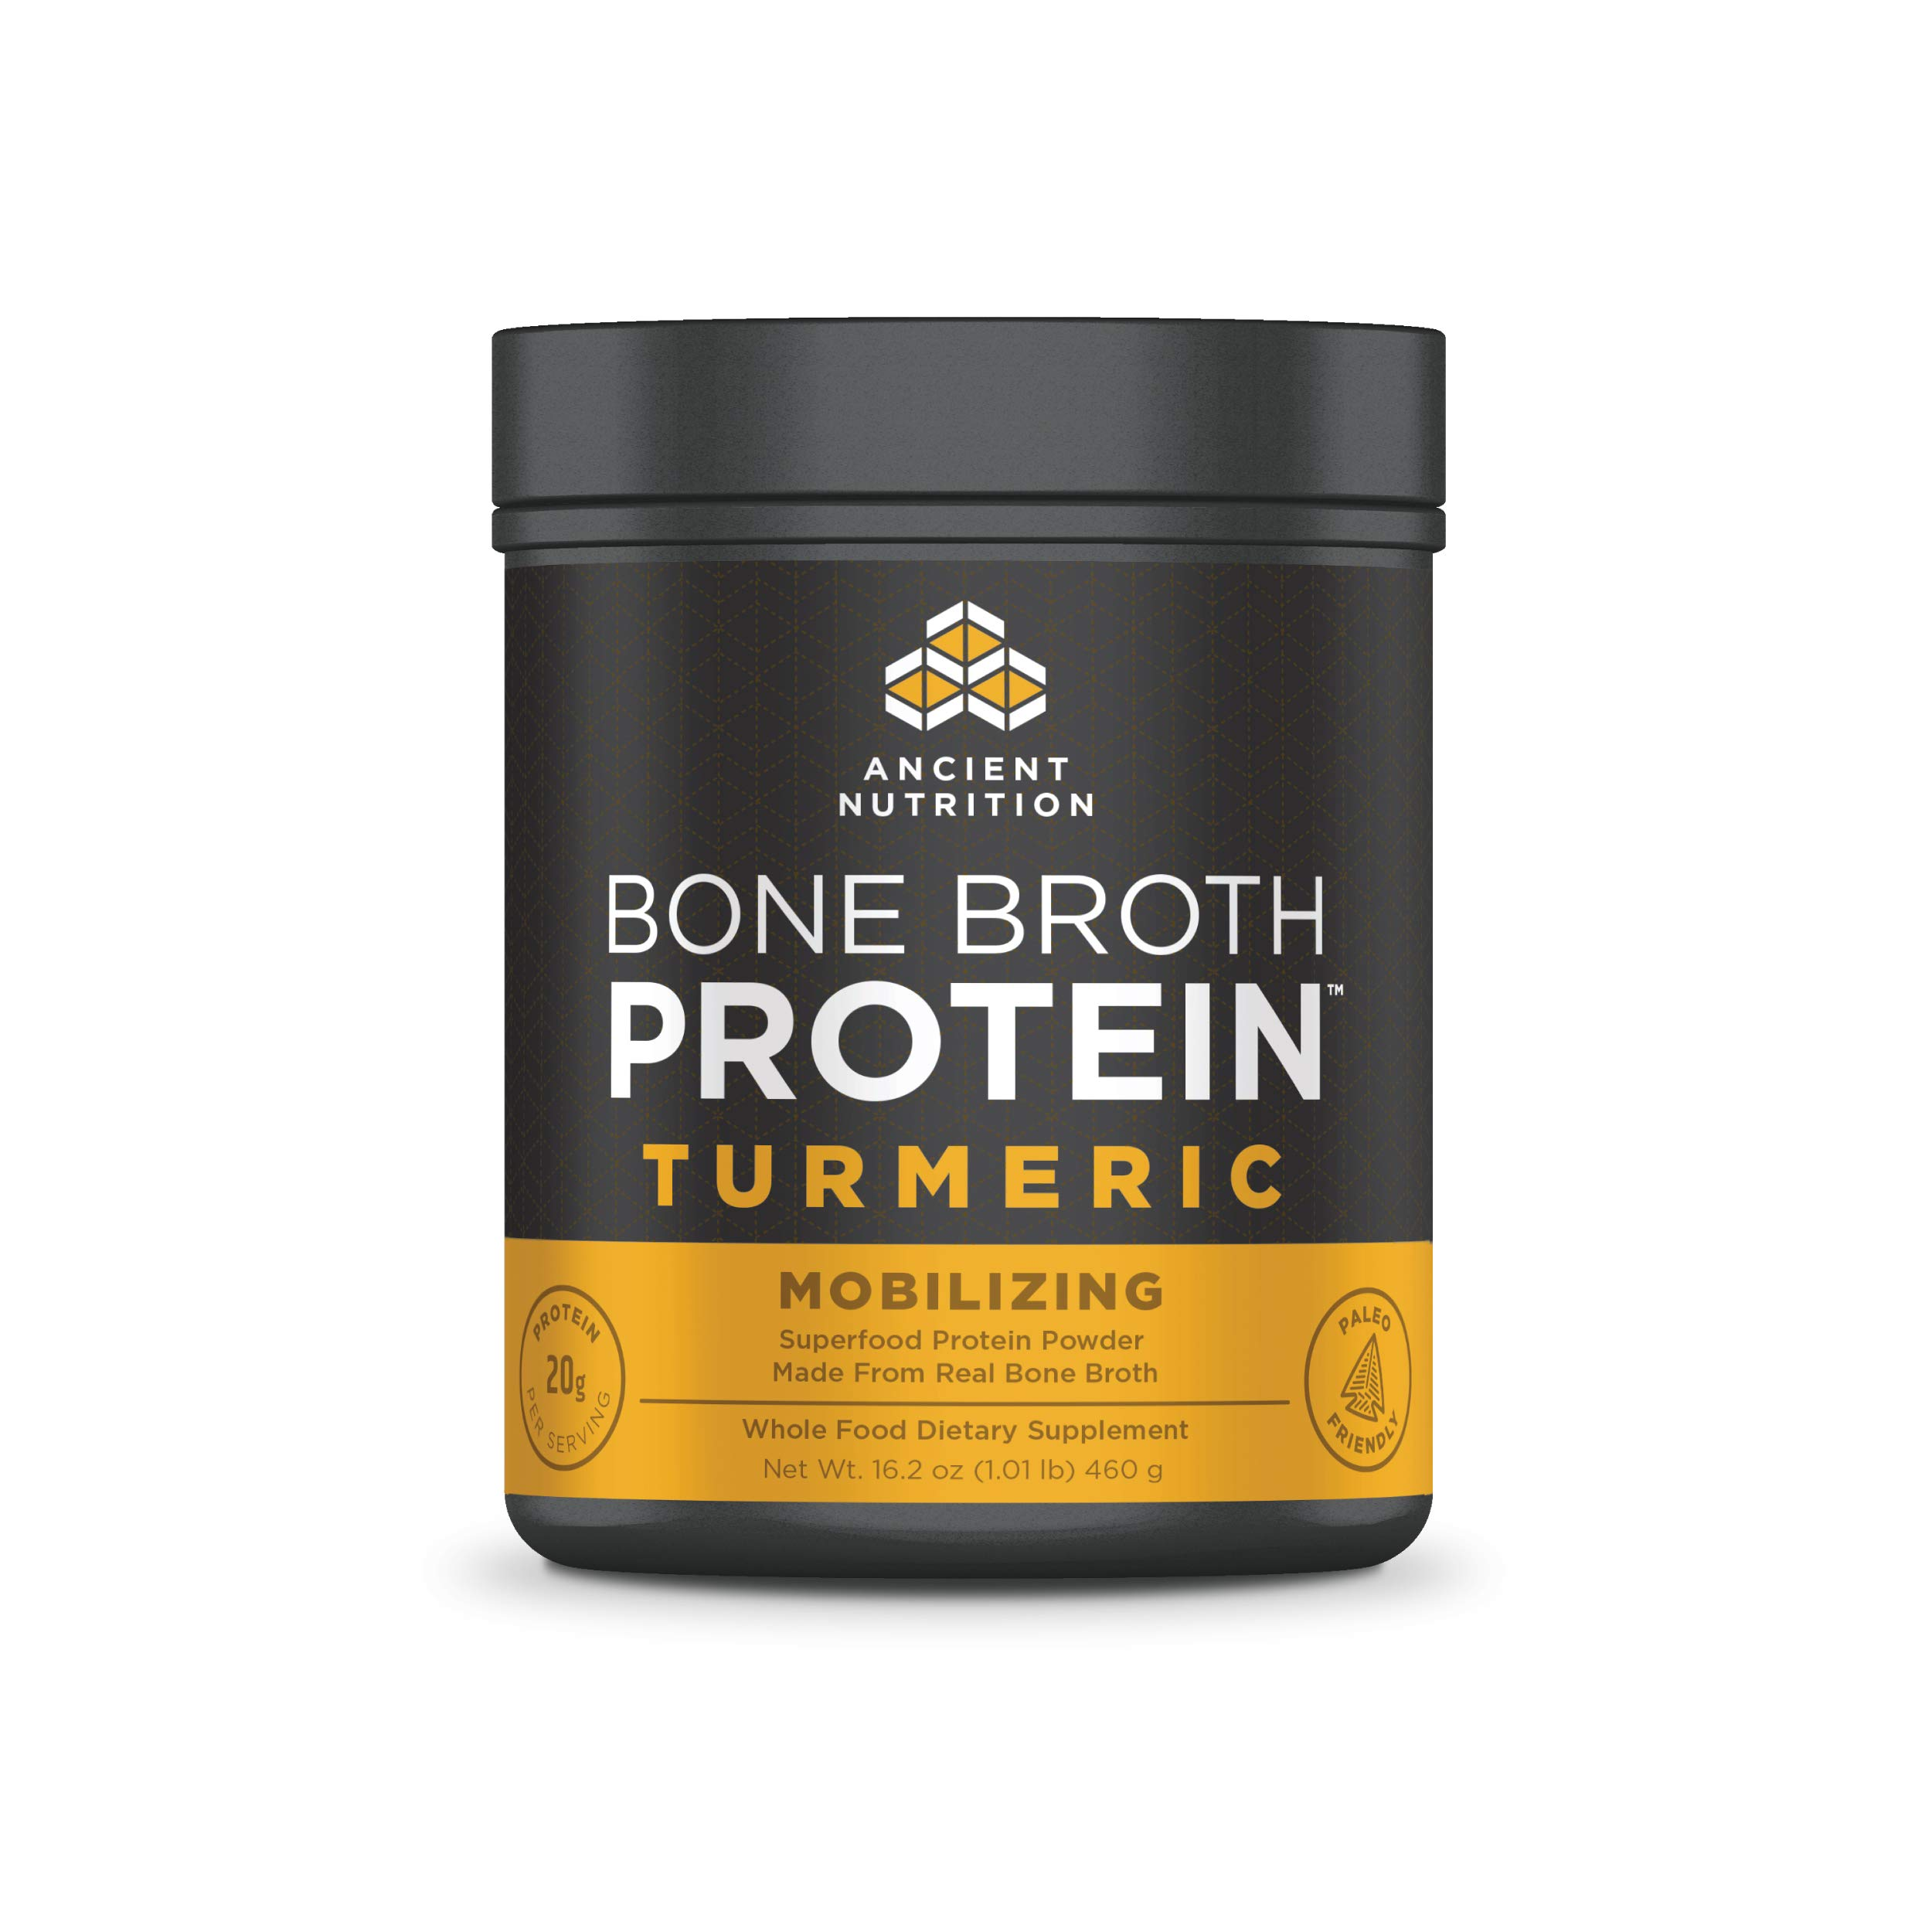 Ancient Nutrition Bone Broth Protein Powder, Turmeric Flavor, 20 Servings by Ancient Nutrition